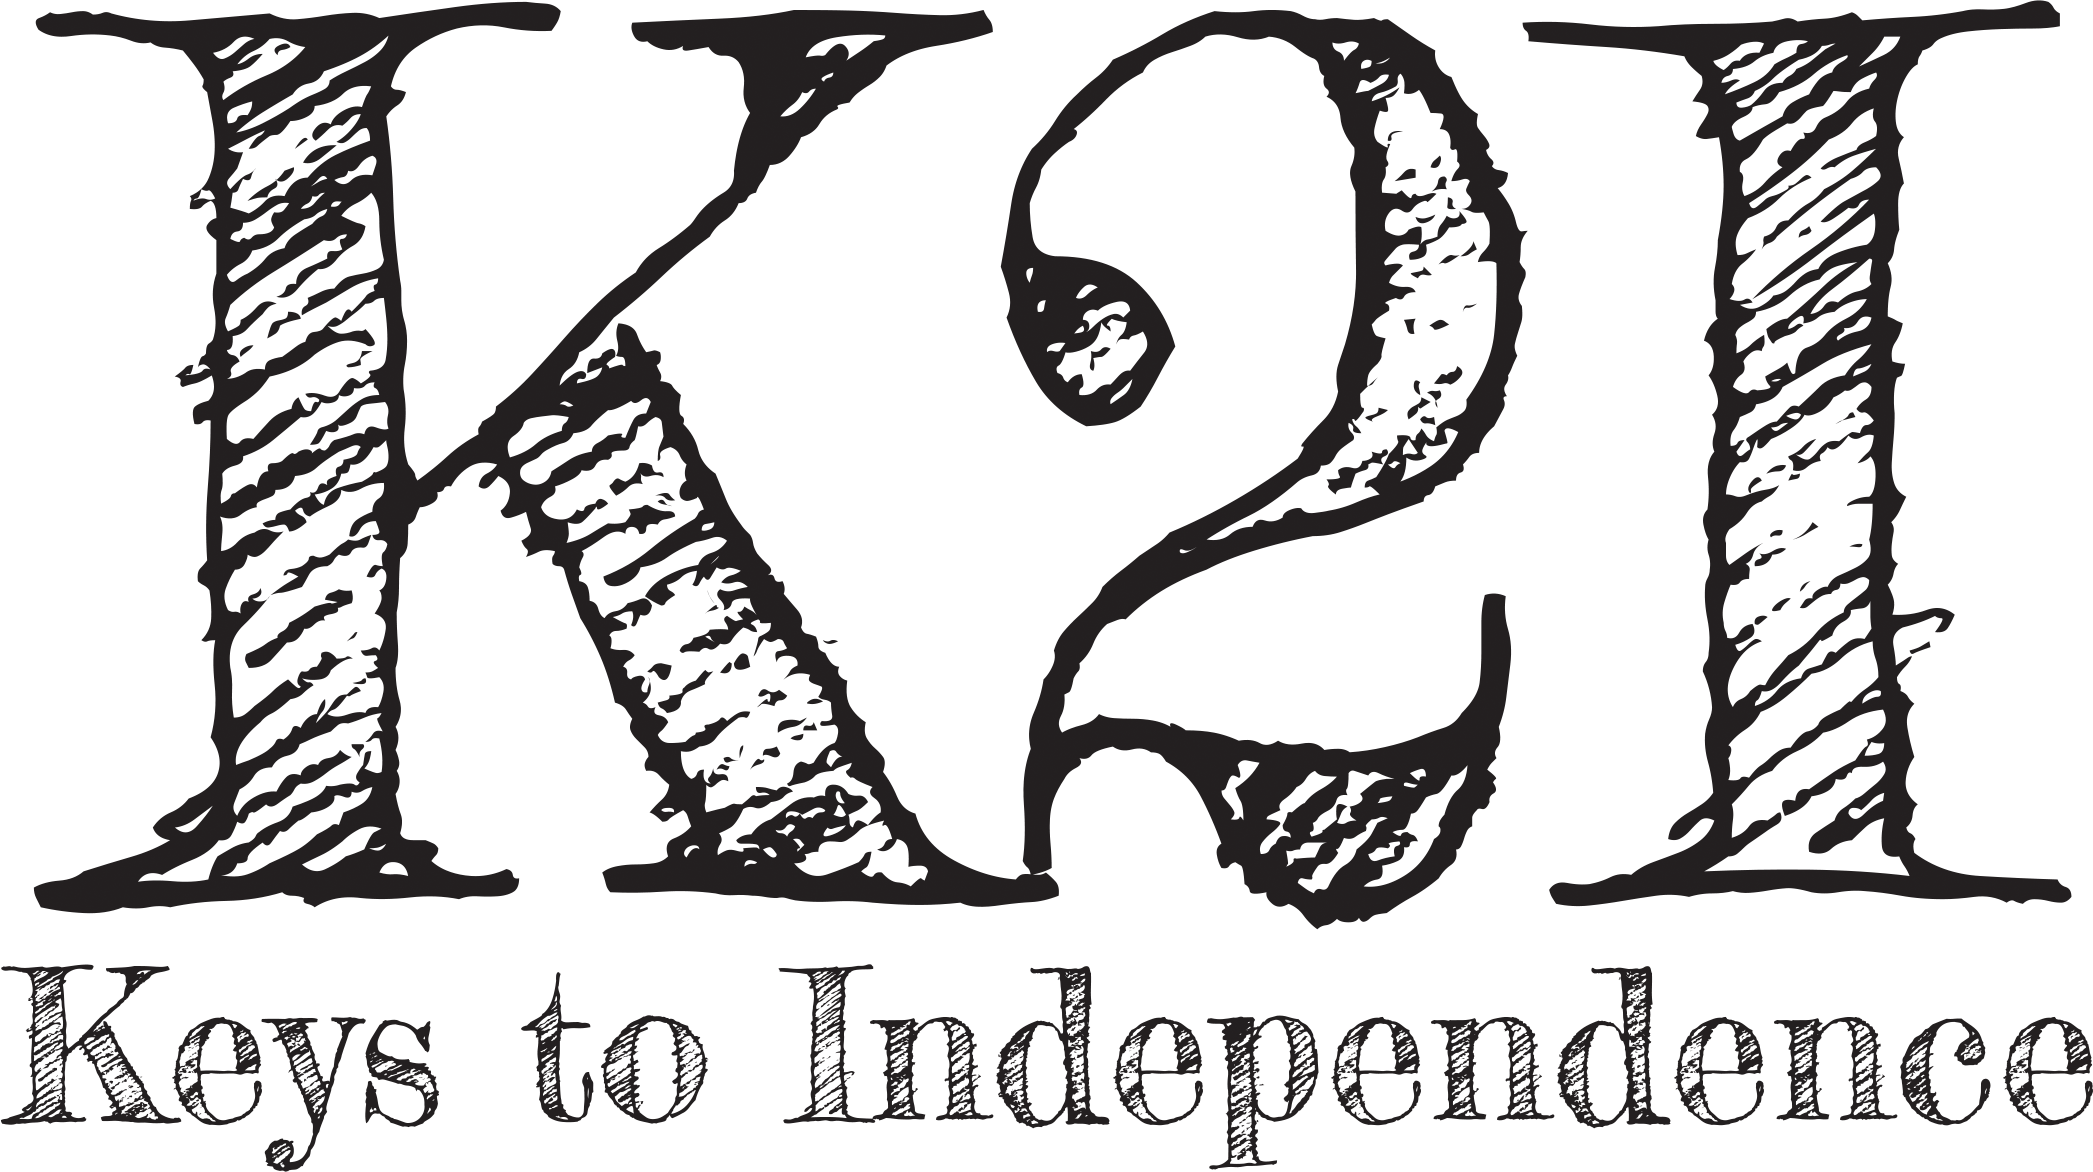 Keys to Independence